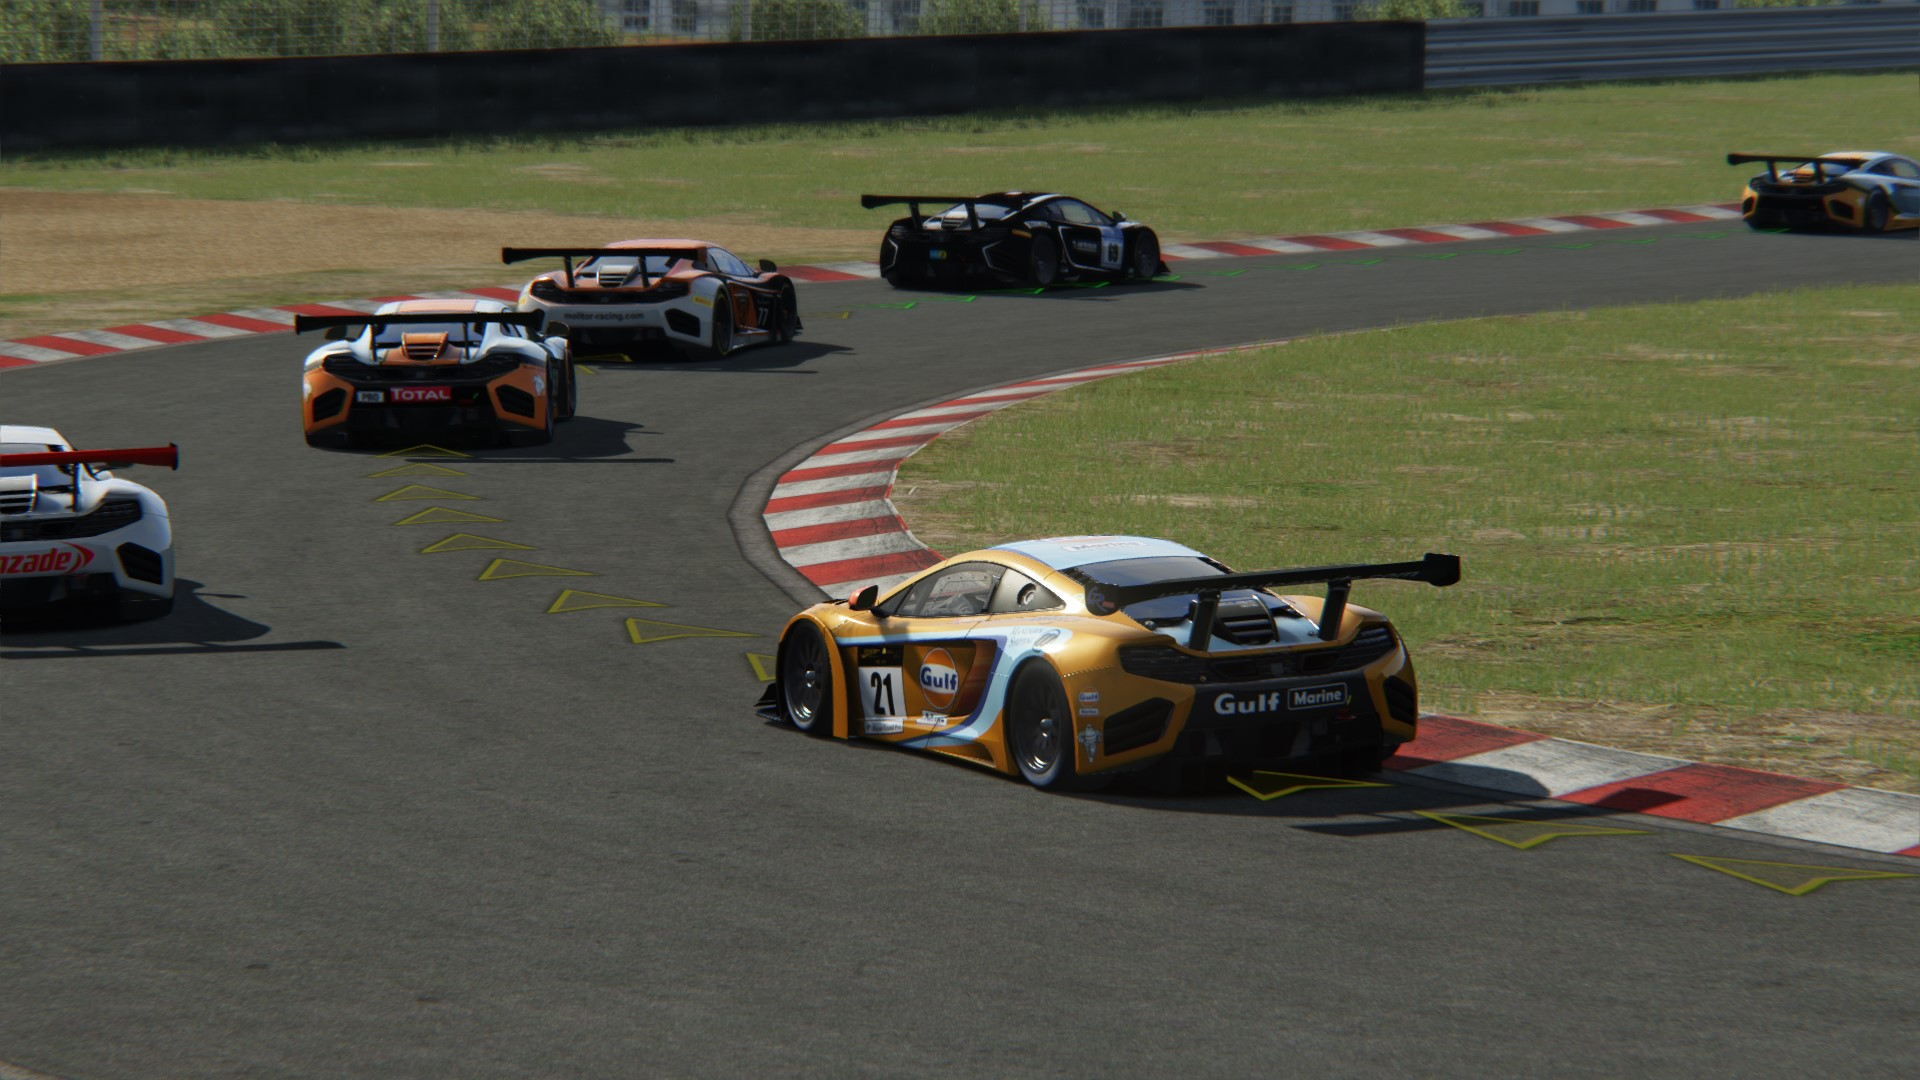 Screenshot_mclaren_mp412c_gt3_sportsland_sugo_7-4-116-10-20-25.jpg